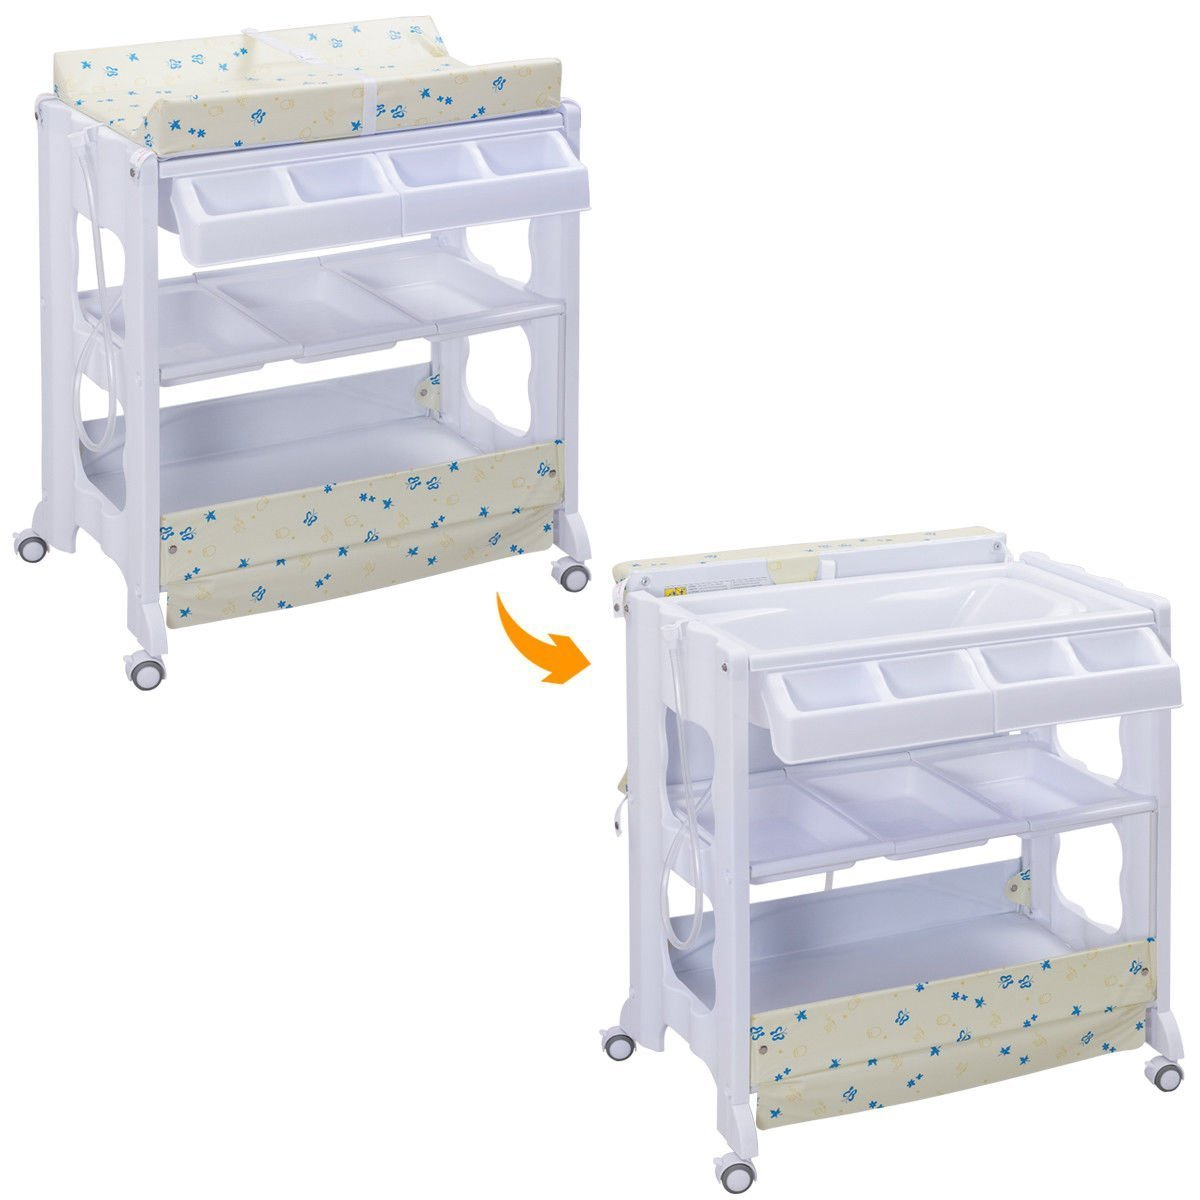 Costzon Baby Bath and Changing Table, Diaper Organizer for Infant with Tube & Cushion (Beige) by Costzon (Image #2)